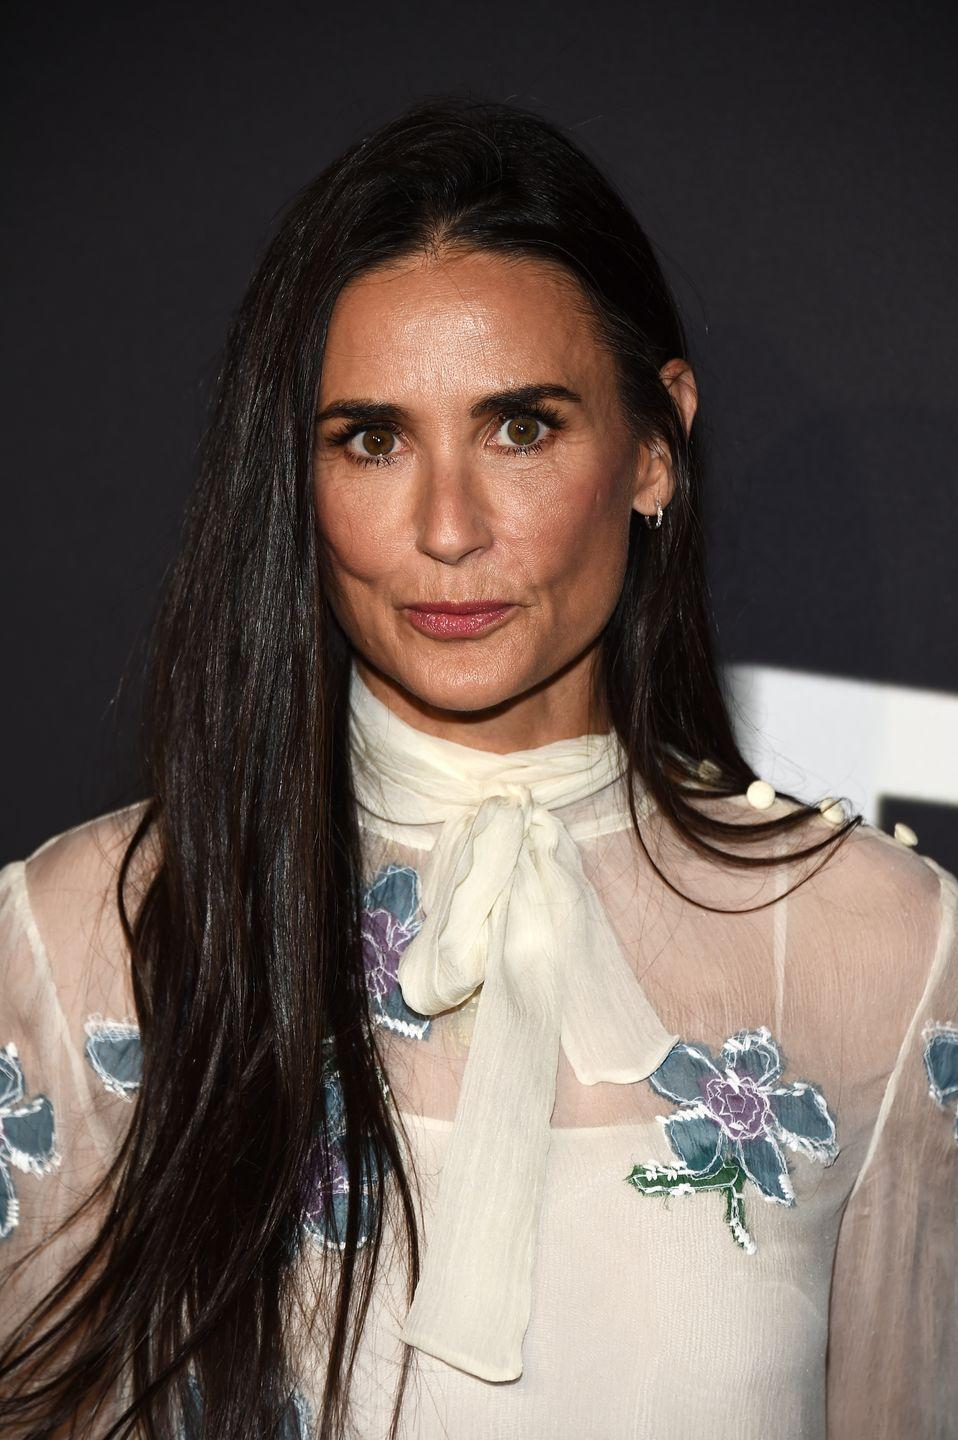 """<p><strong>Real name: </strong>Demetria Gene Guynes</p><p>Demi Moore married rock musician Freddy Moore when she was just 17 years old and <a href=""""http://www.demophonic.com/bio/demimoor.html"""" rel=""""nofollow noopener"""" target=""""_blank"""" data-ylk=""""slk:took his last name"""" class=""""link rapid-noclick-resp"""">took his last name</a>. They divorced five years later, but she kept the name on.</p>"""